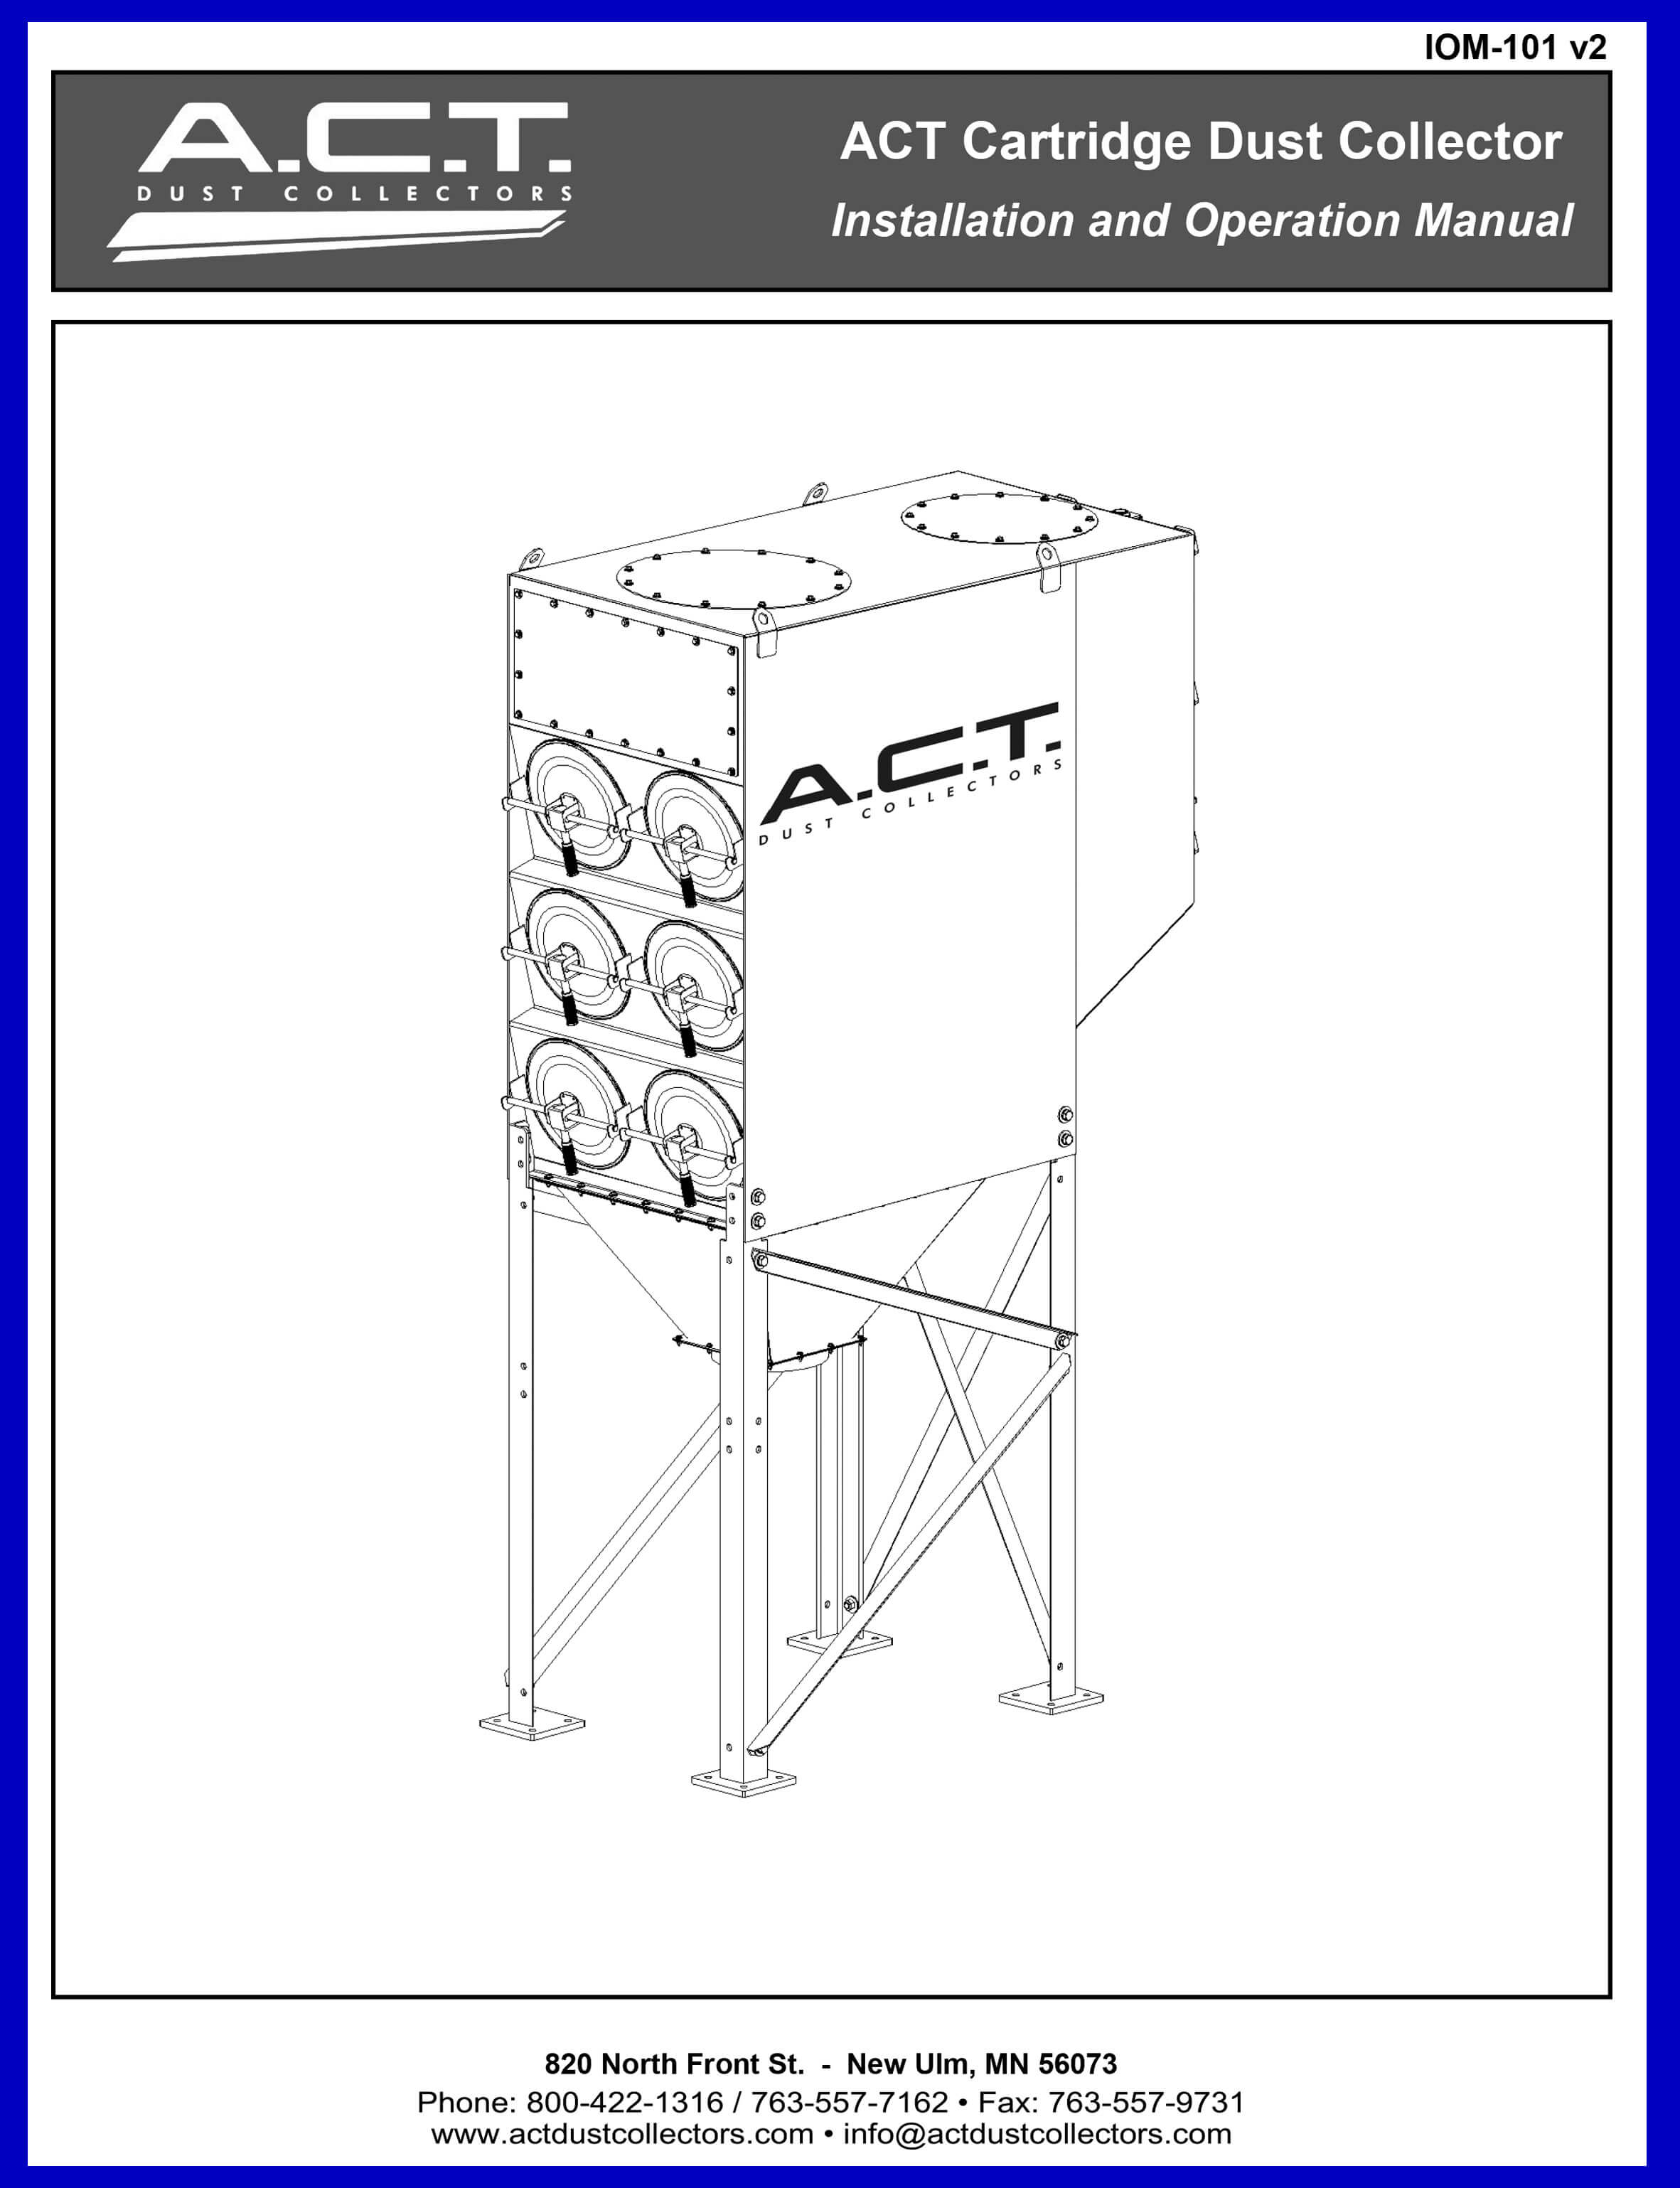 ACT Cartridge Dust Collectors Manual COVER